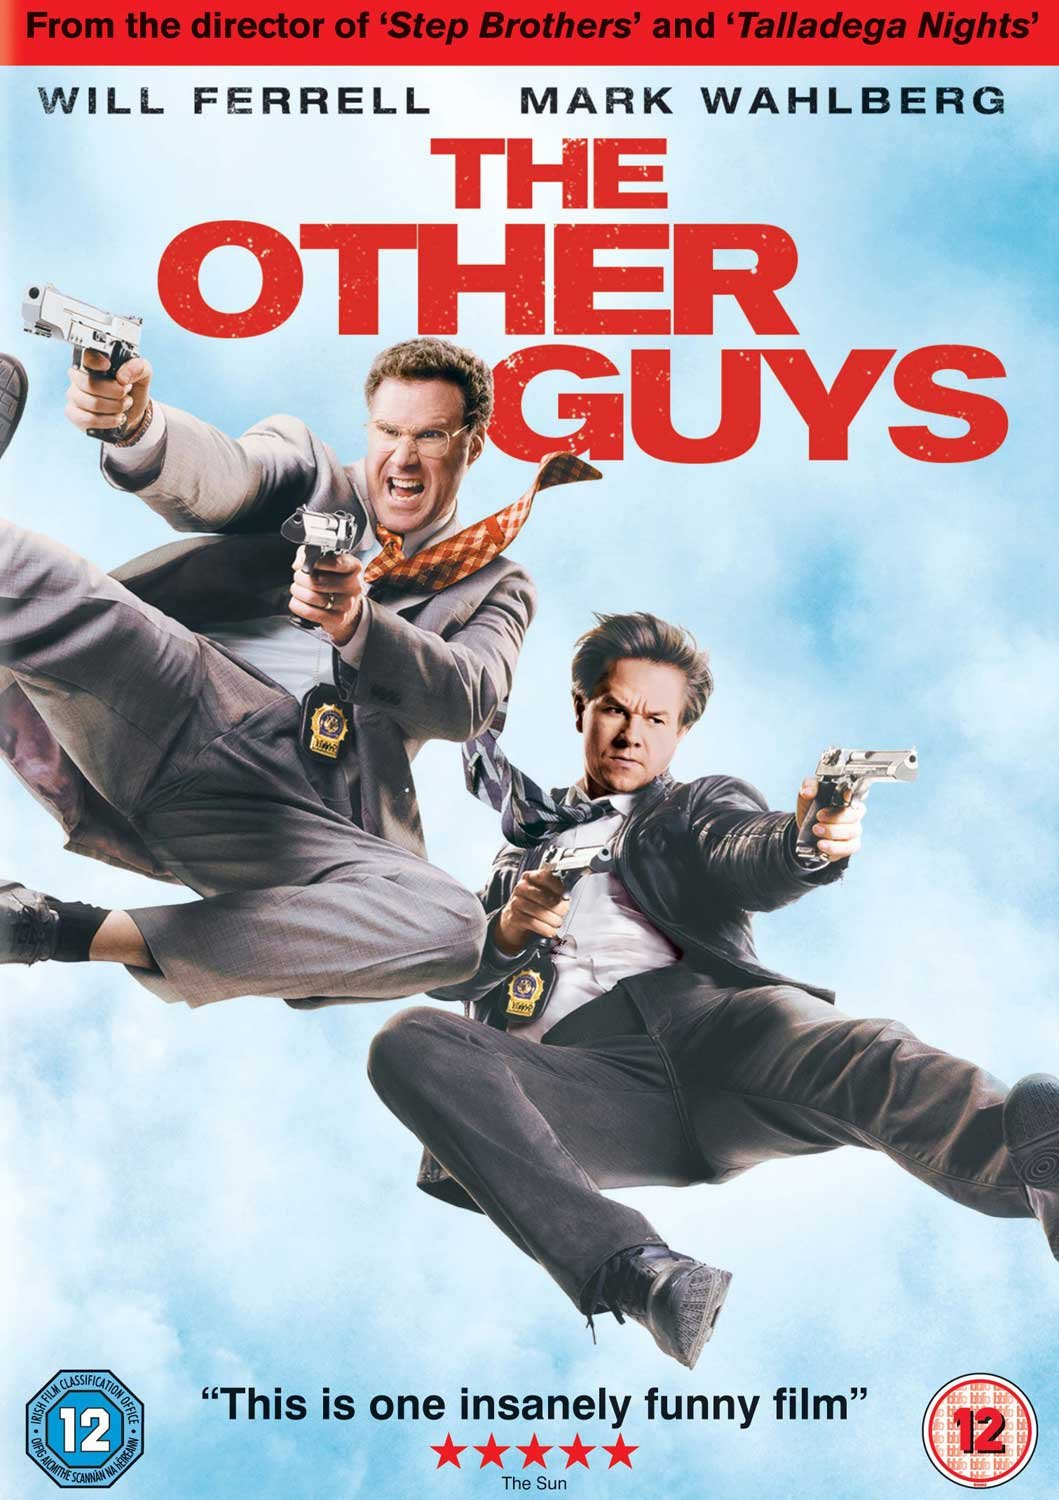 Amazon.com: The Other Guys [DVD] [2011]: Mark Wahlberg: Movies & TV